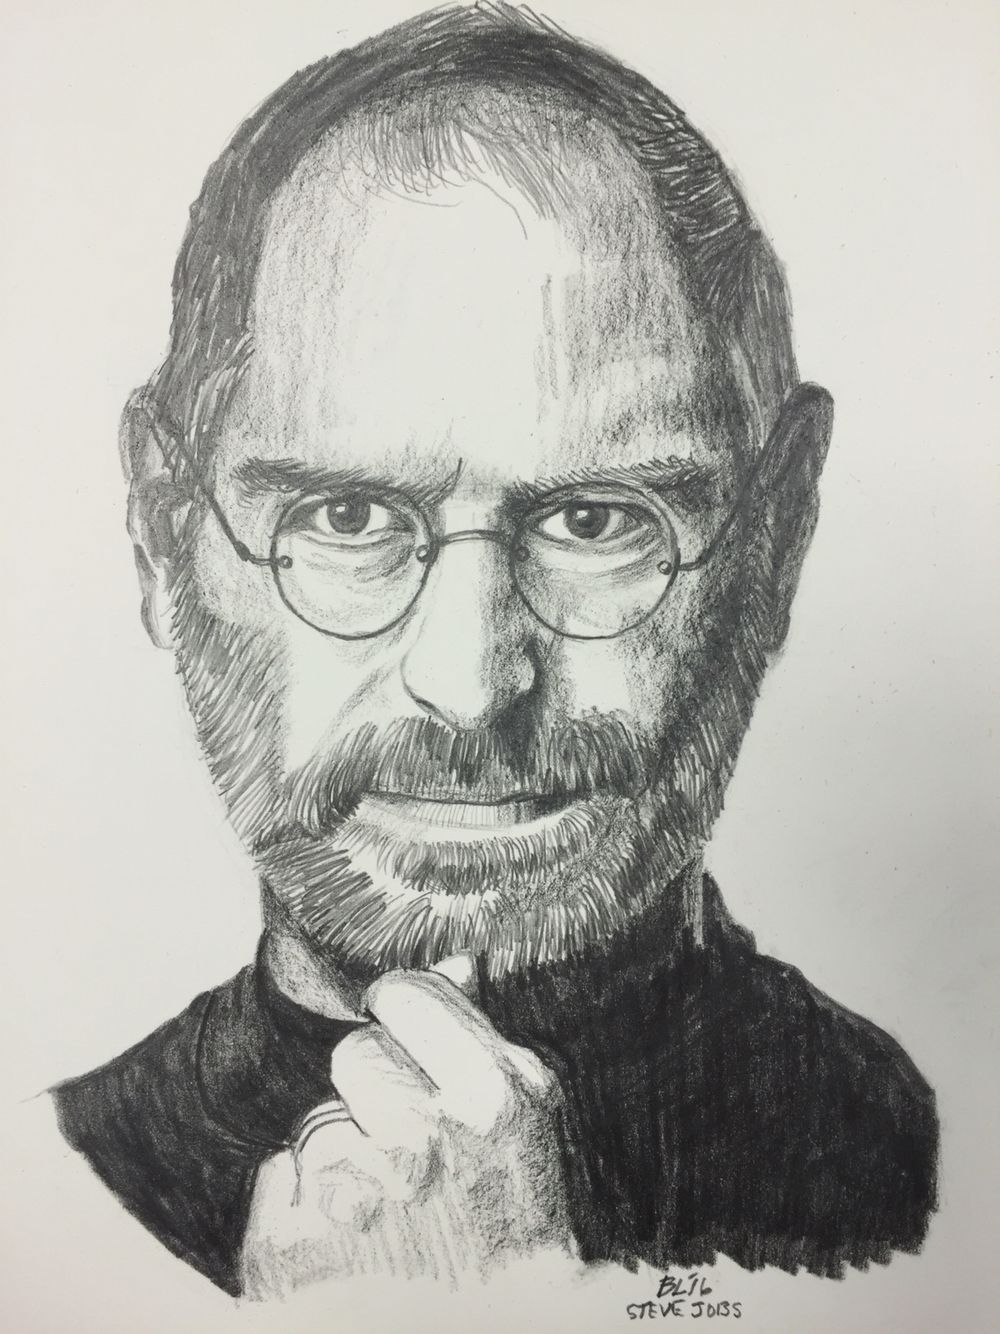 Pencil drawing of steve jobs by barry m levy see his work on etsy com